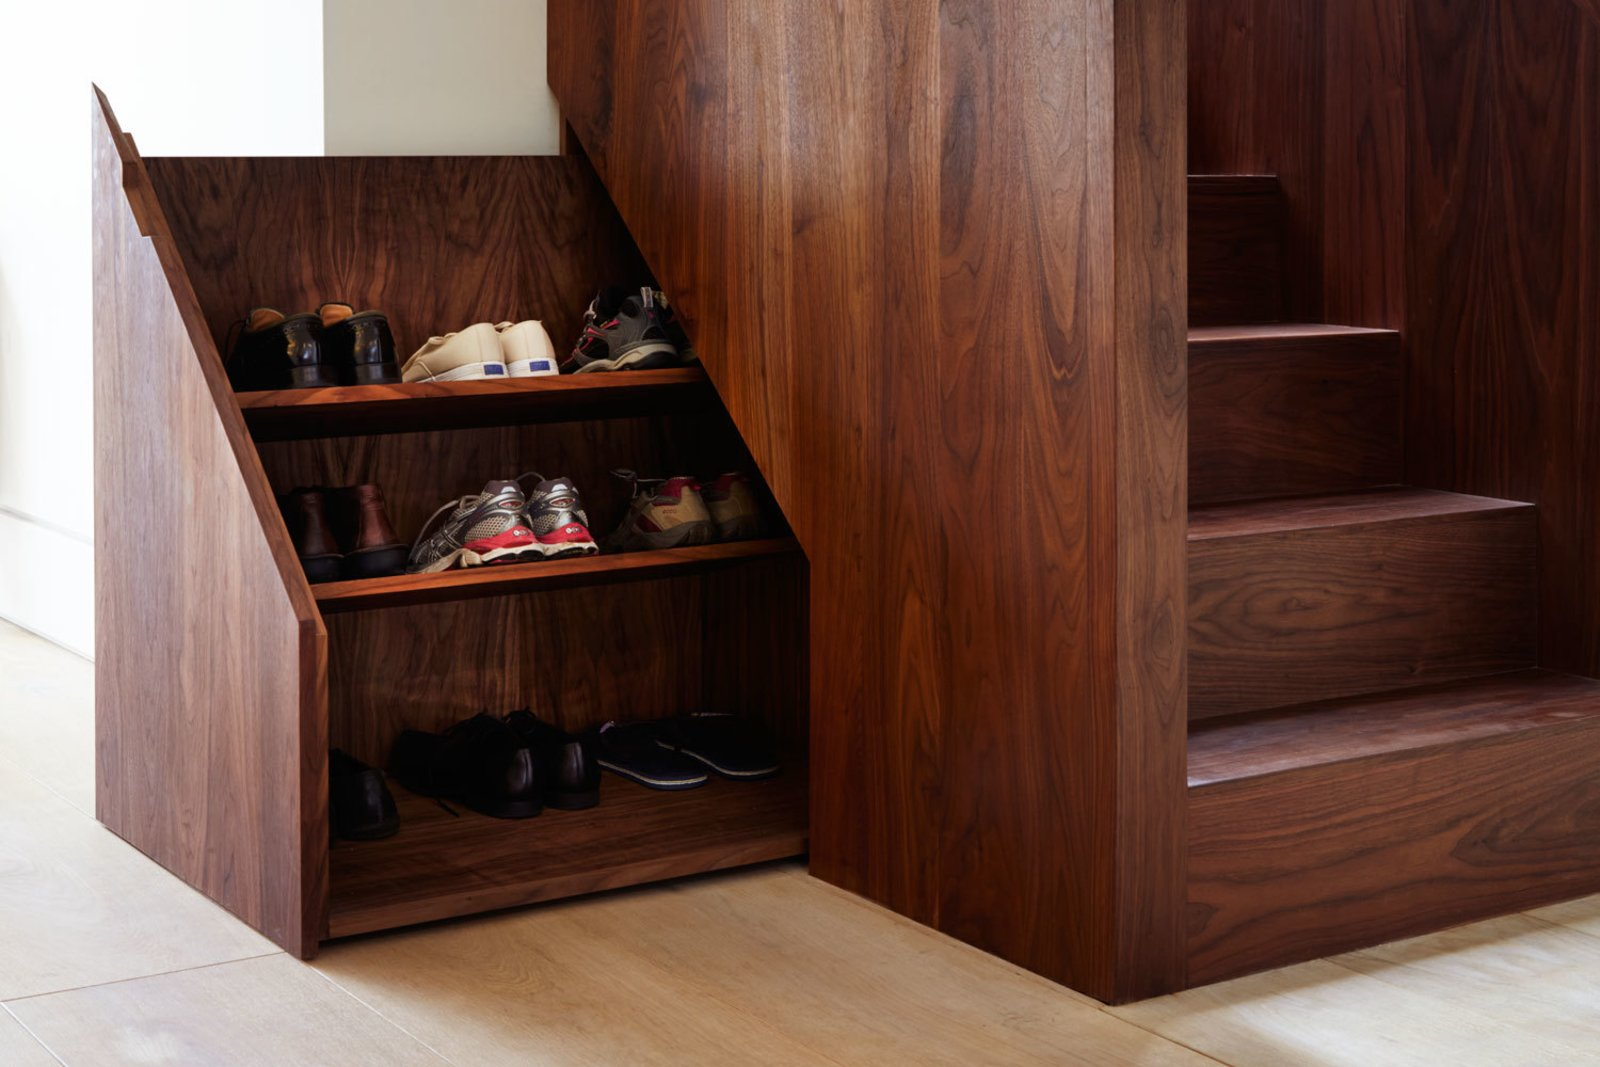 Storage Room and Under Stairs Storage Type Photo caption: The base of the stairwell includes a hidden compartment to conveniently store shoes.  Photo 9 of 10 in 10 Clever Ways to Sneak Storage Into Your Renovation